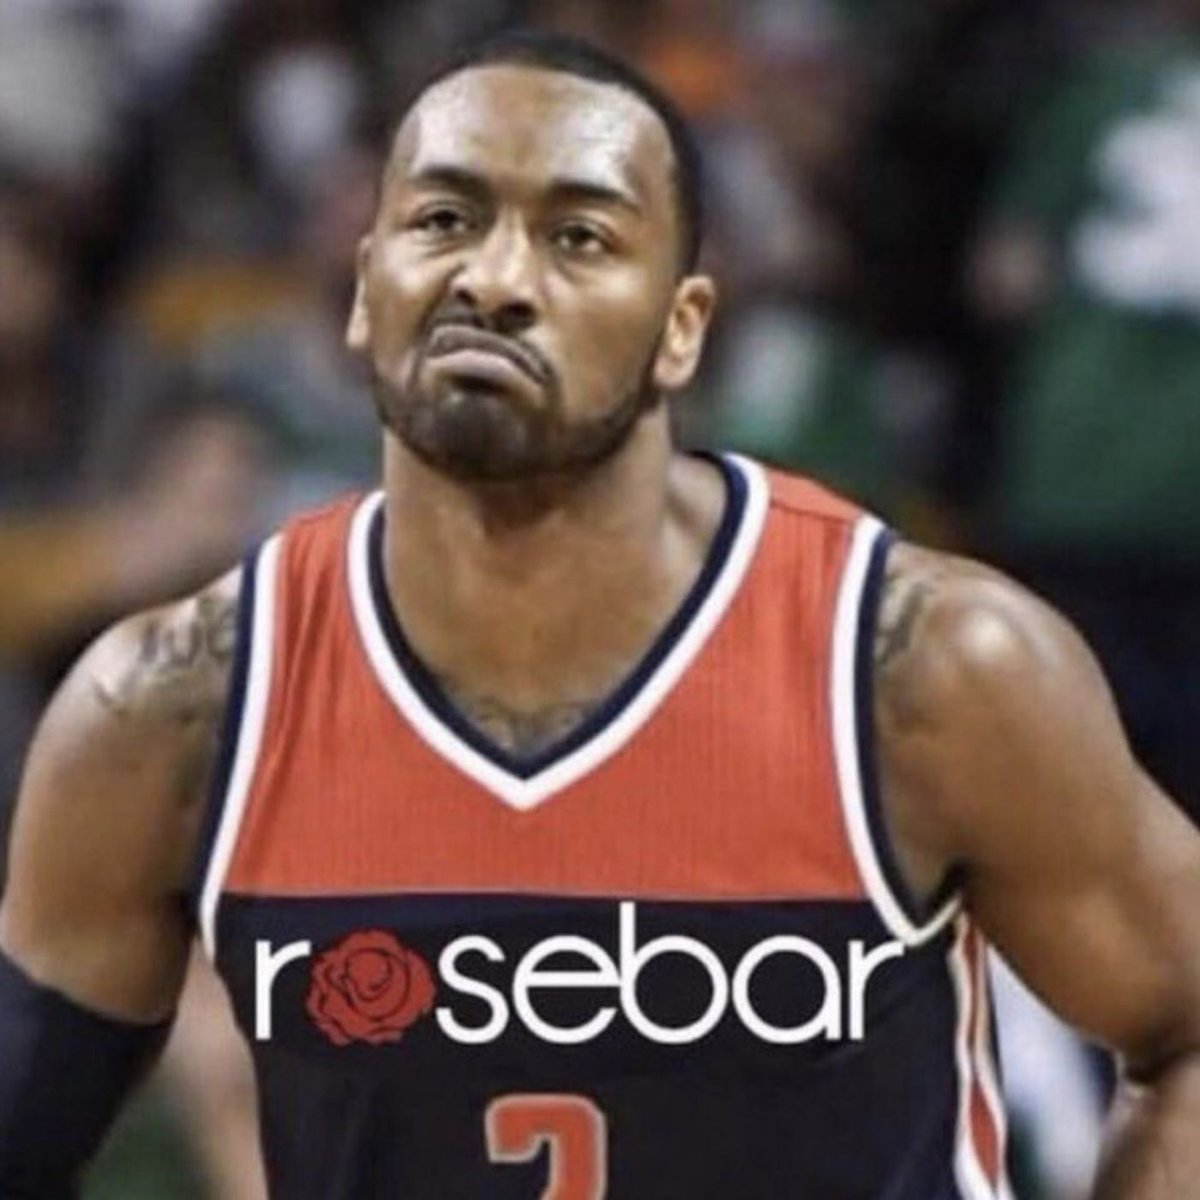 John Wall better have his jersey retired